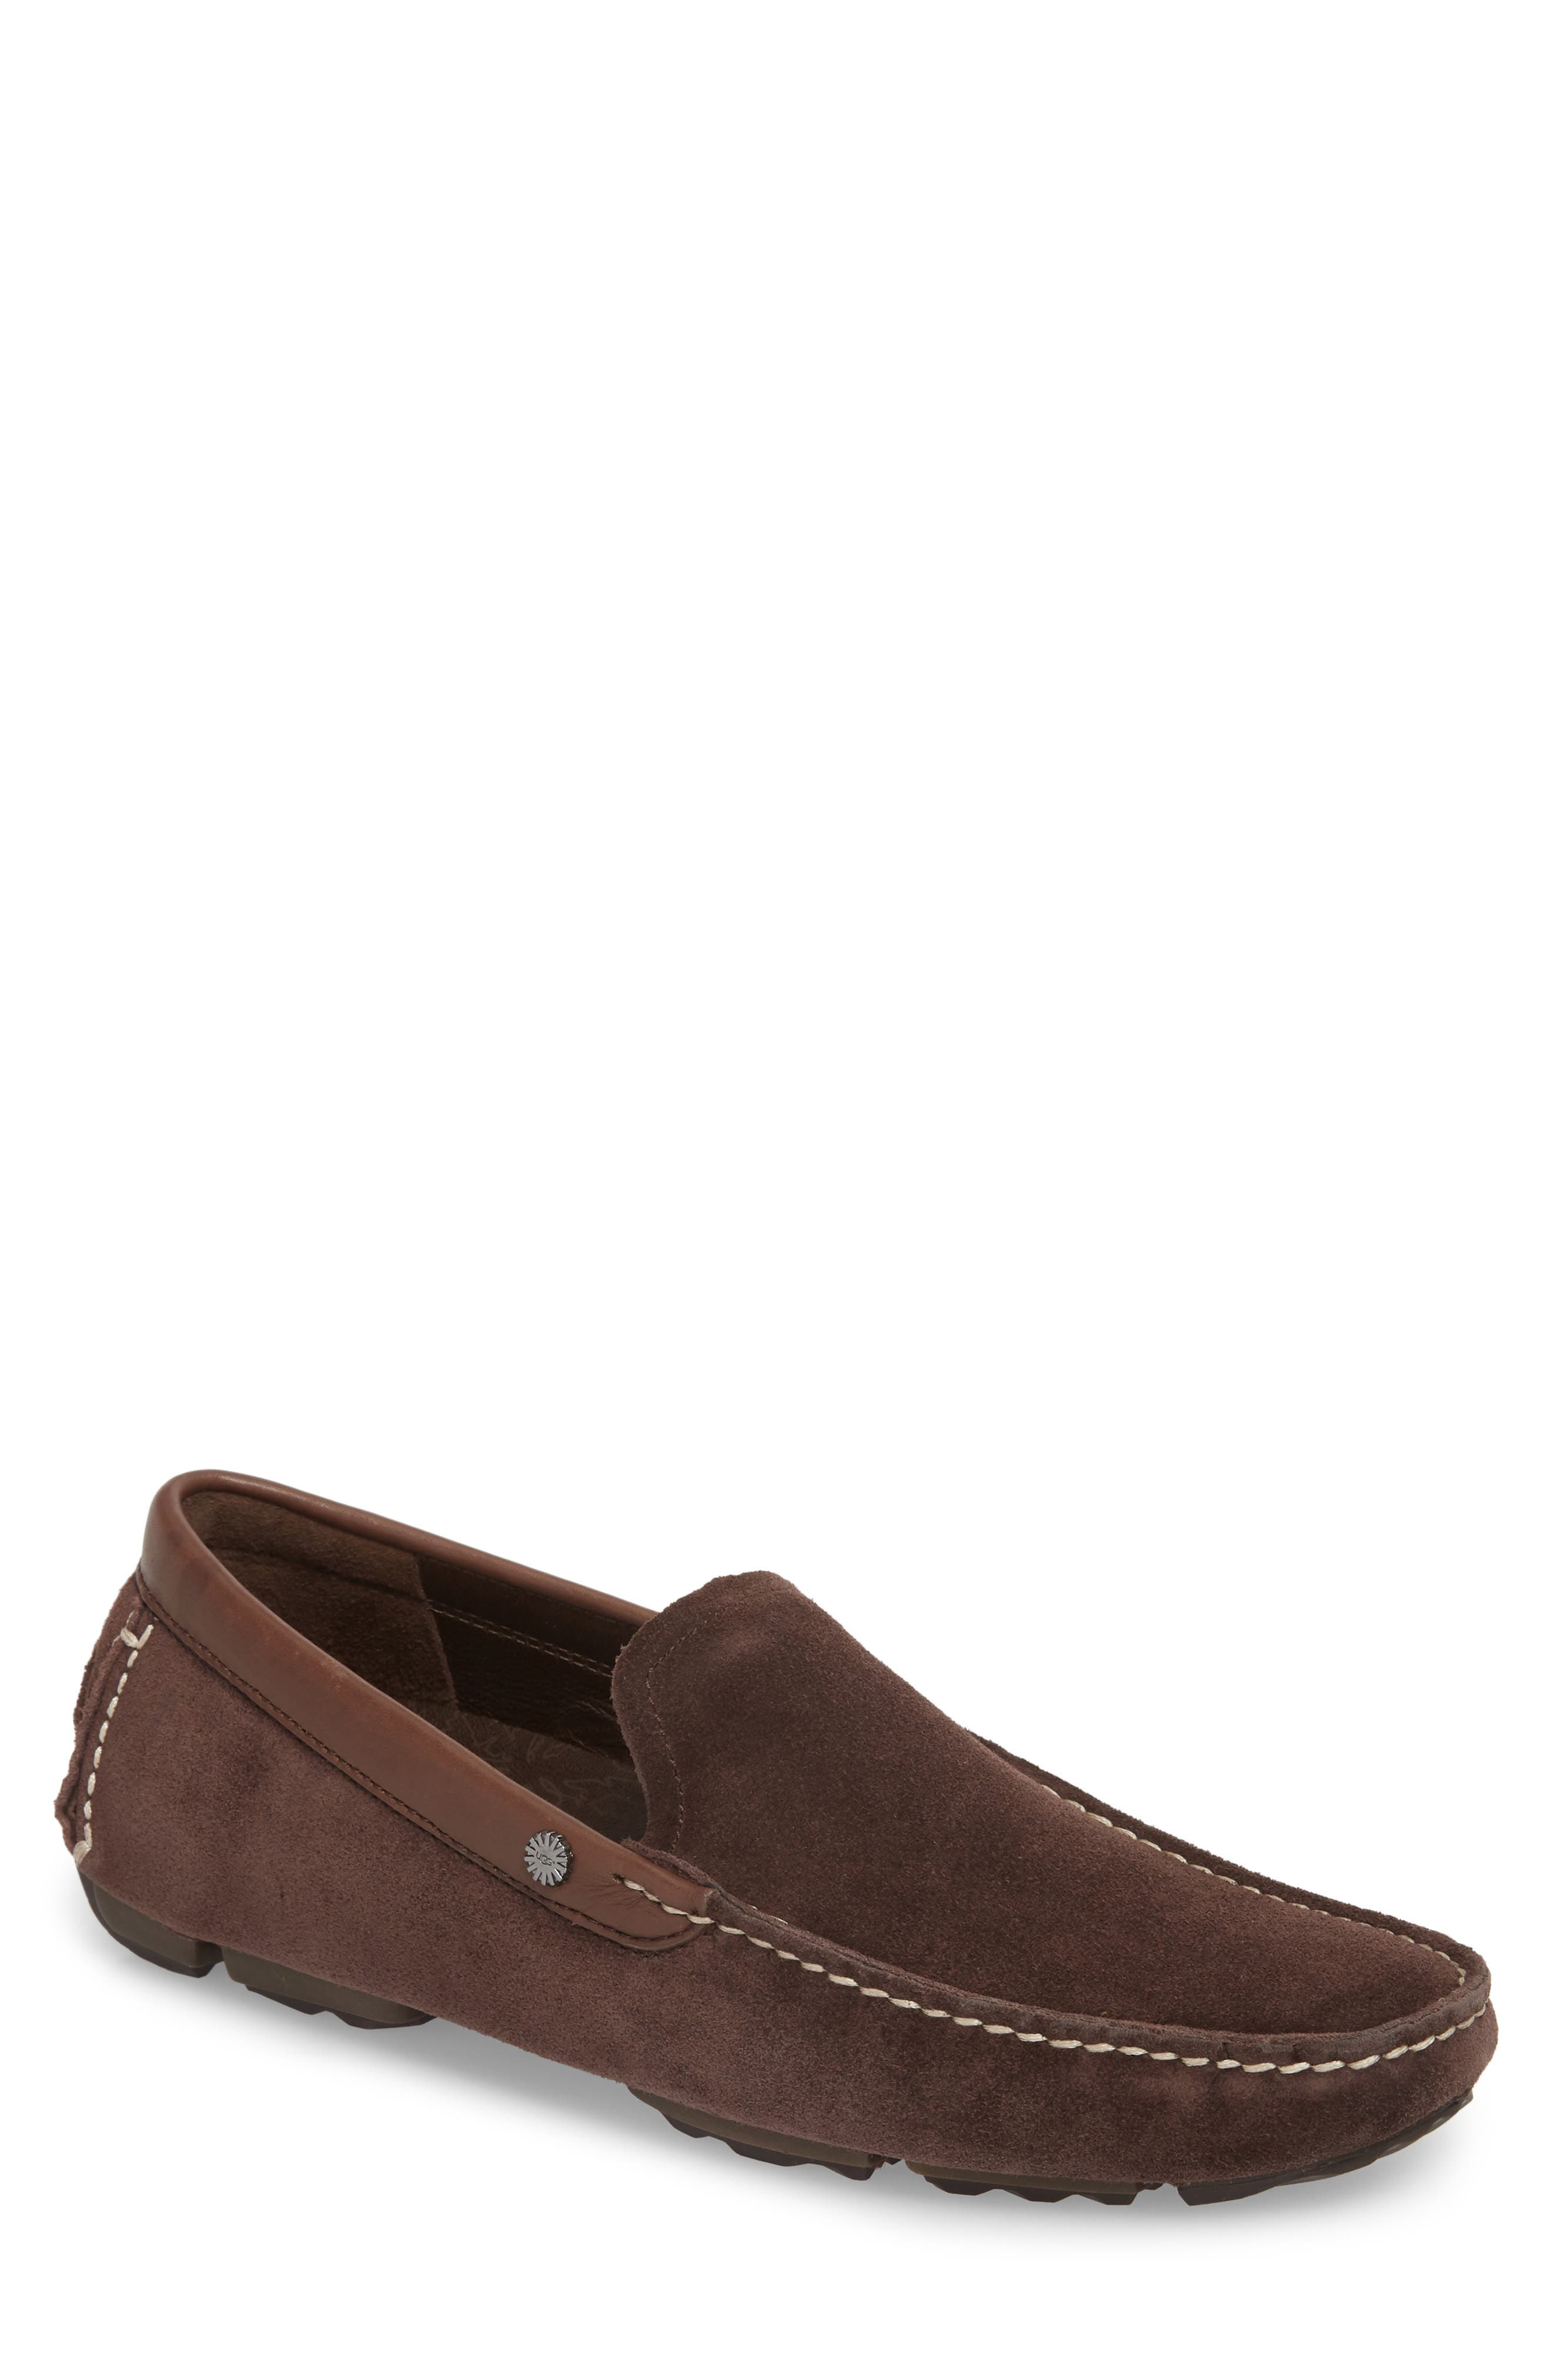 Bel-Air Driving Moccasin,                             Main thumbnail 1, color,                             Stout Leather